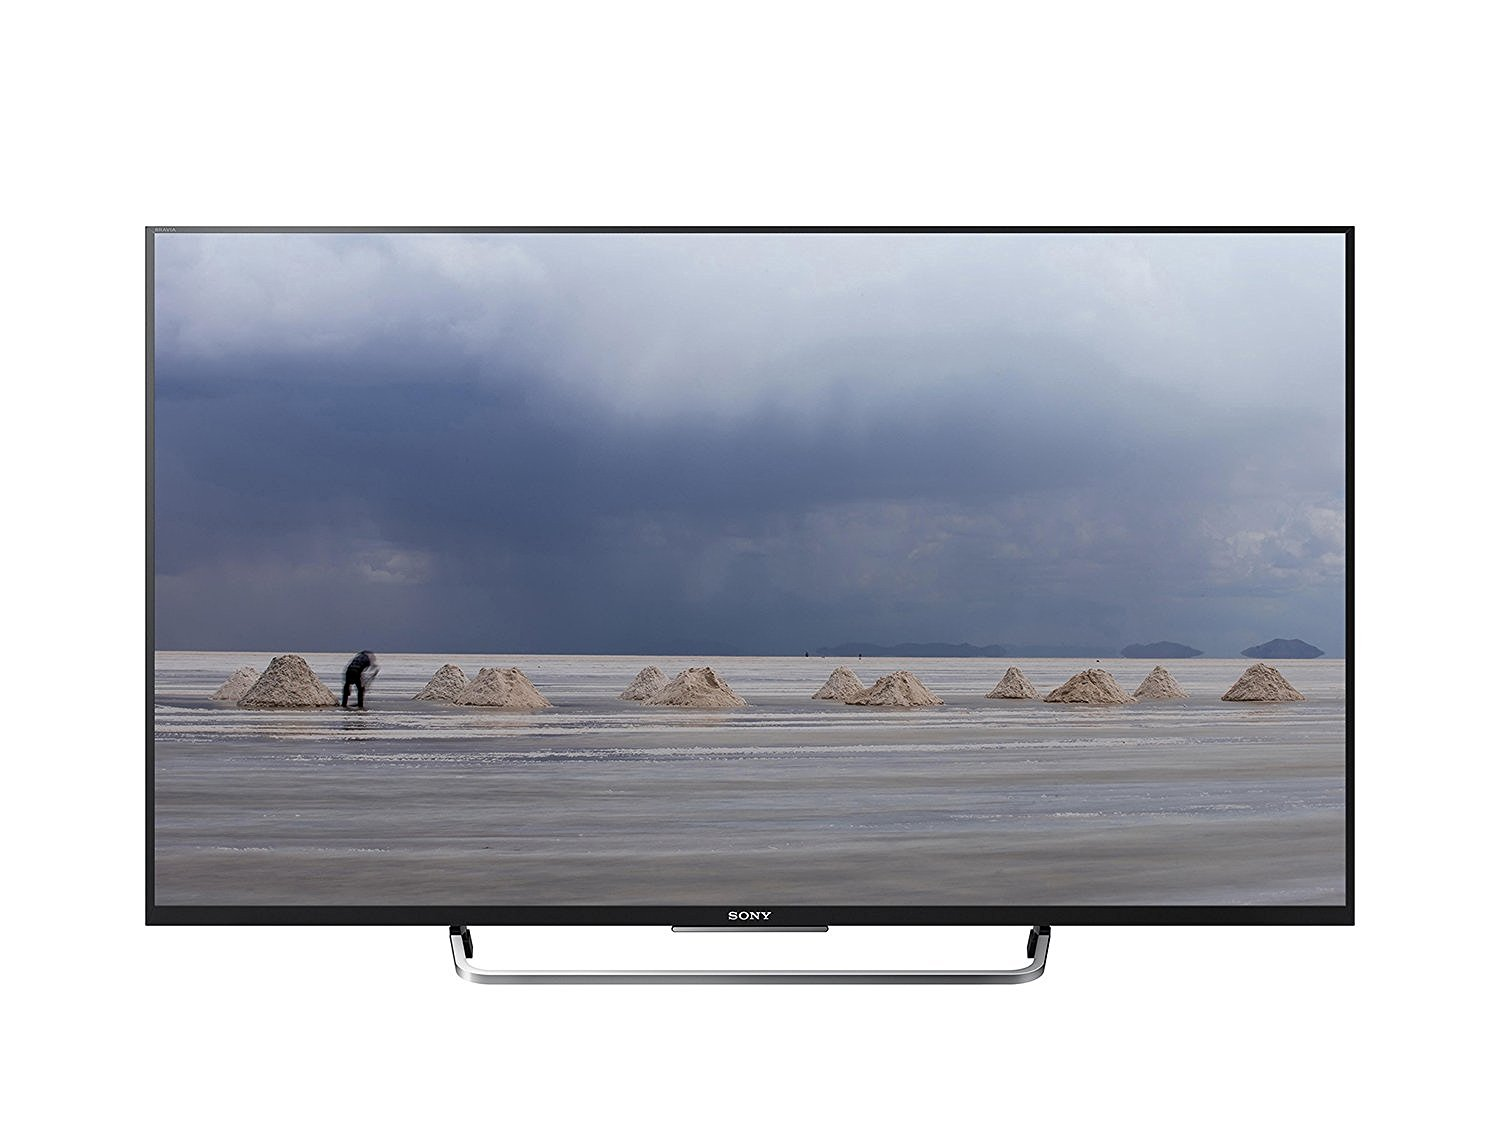 sony tv reviews. sony bravia kdl-43w800d full hd led tv image. write your review tv reviews a